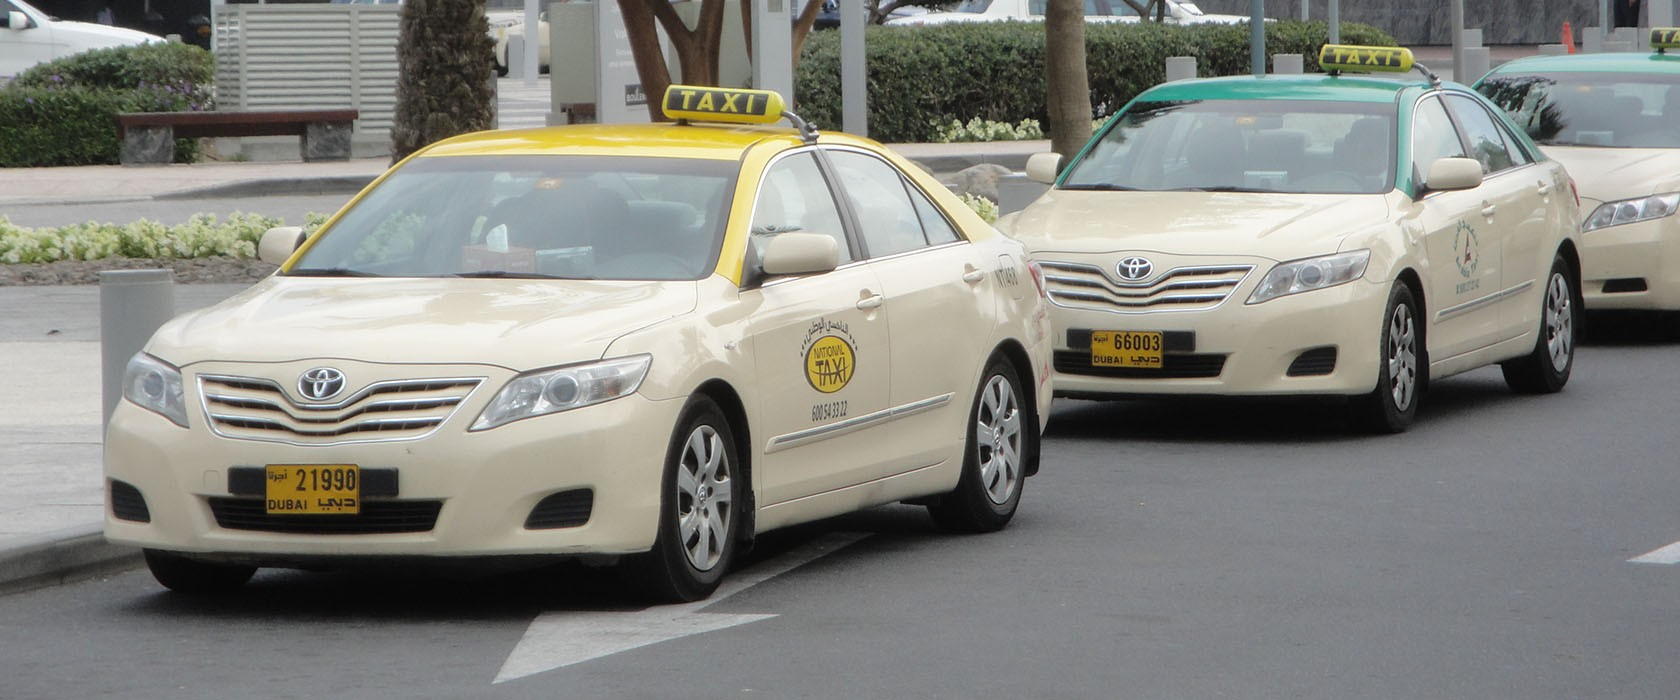 Taxi's in Dubai